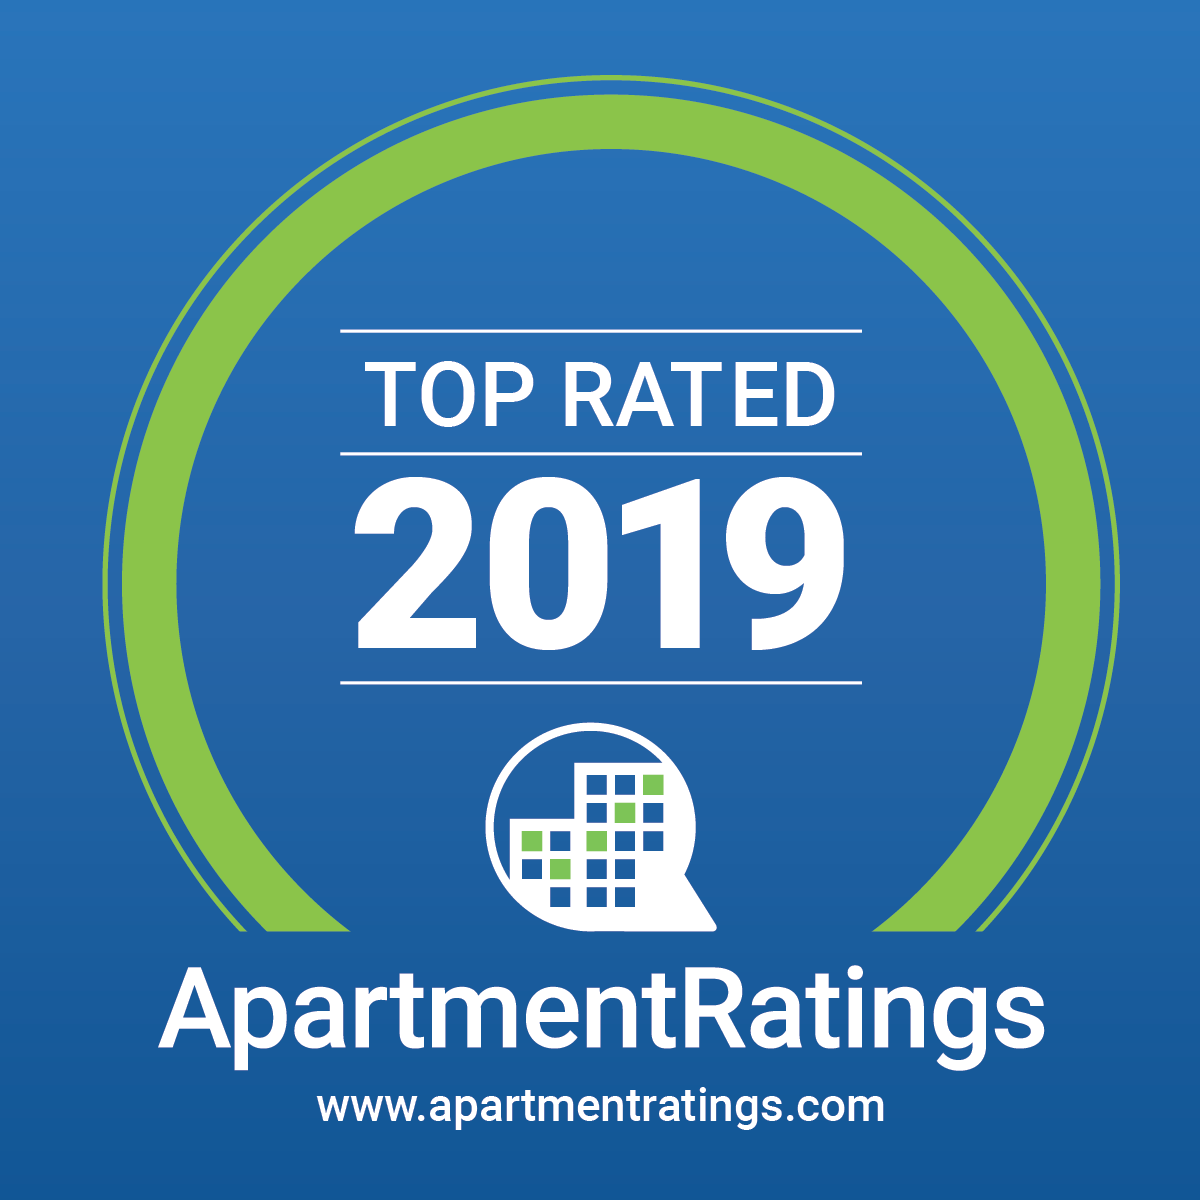 Apartment ratings award icon